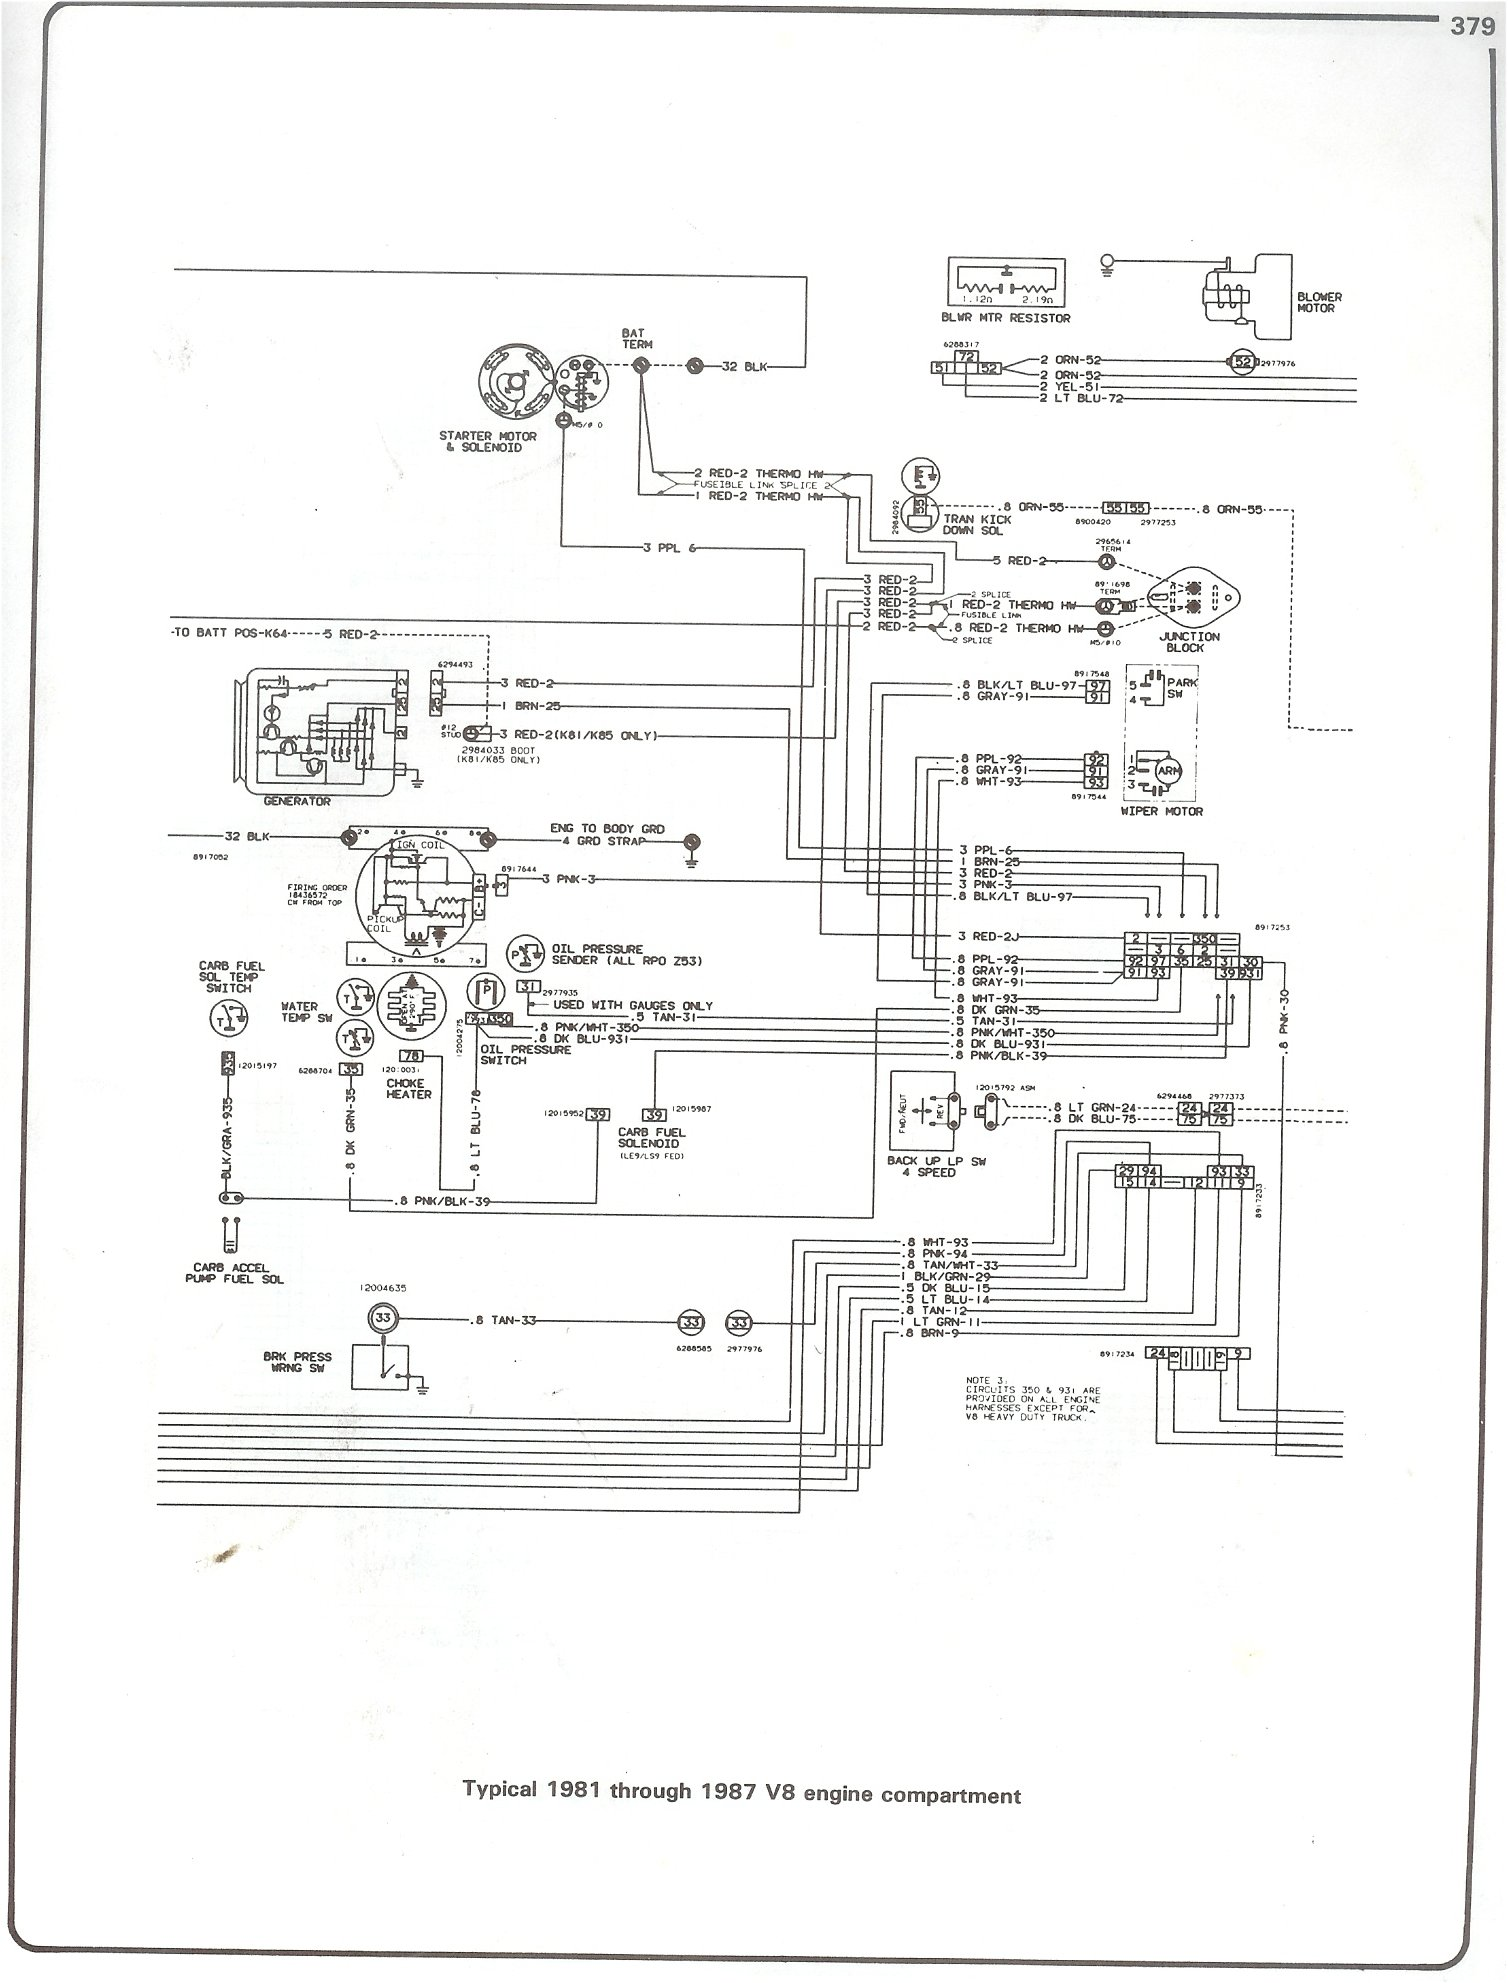 2005 Impala Ignition Wiring Diagram Will Be A Thing Fuse Box 1960 Chevy Further 1964 Corvette In Complete 73 87 Diagrams 2006 2004 Starter